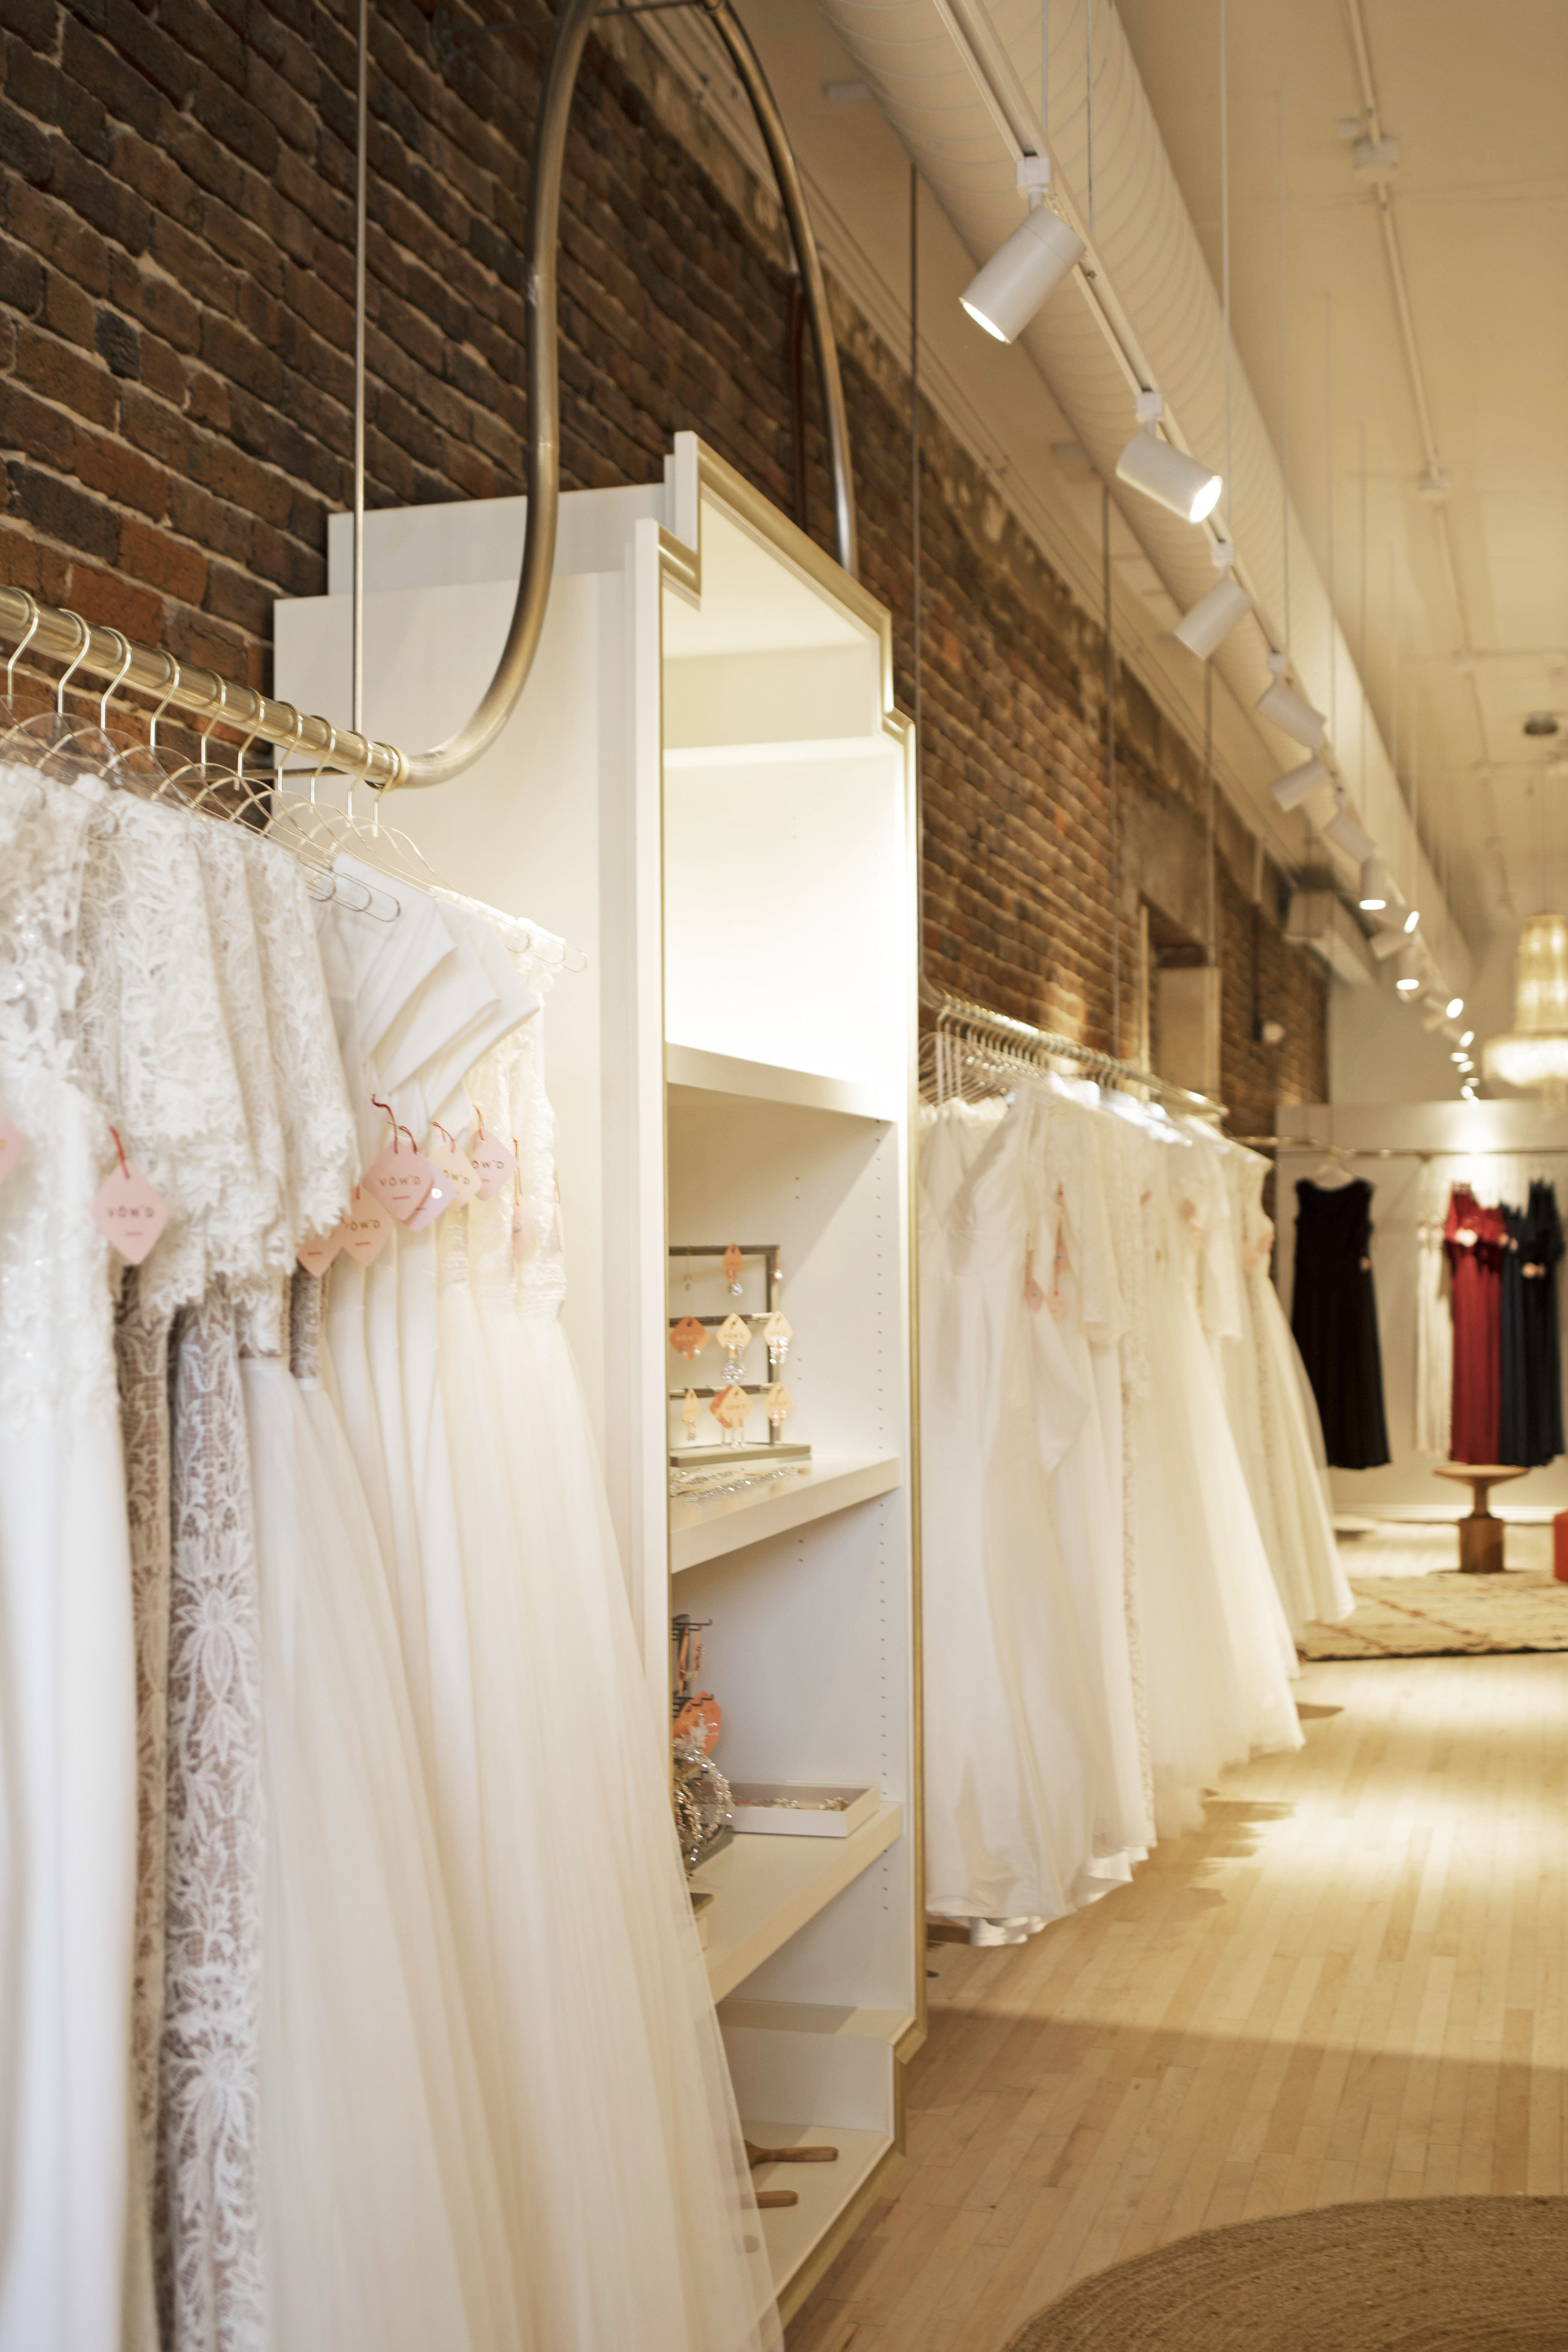 Vow'd Knoxville Store Wedding Dresses